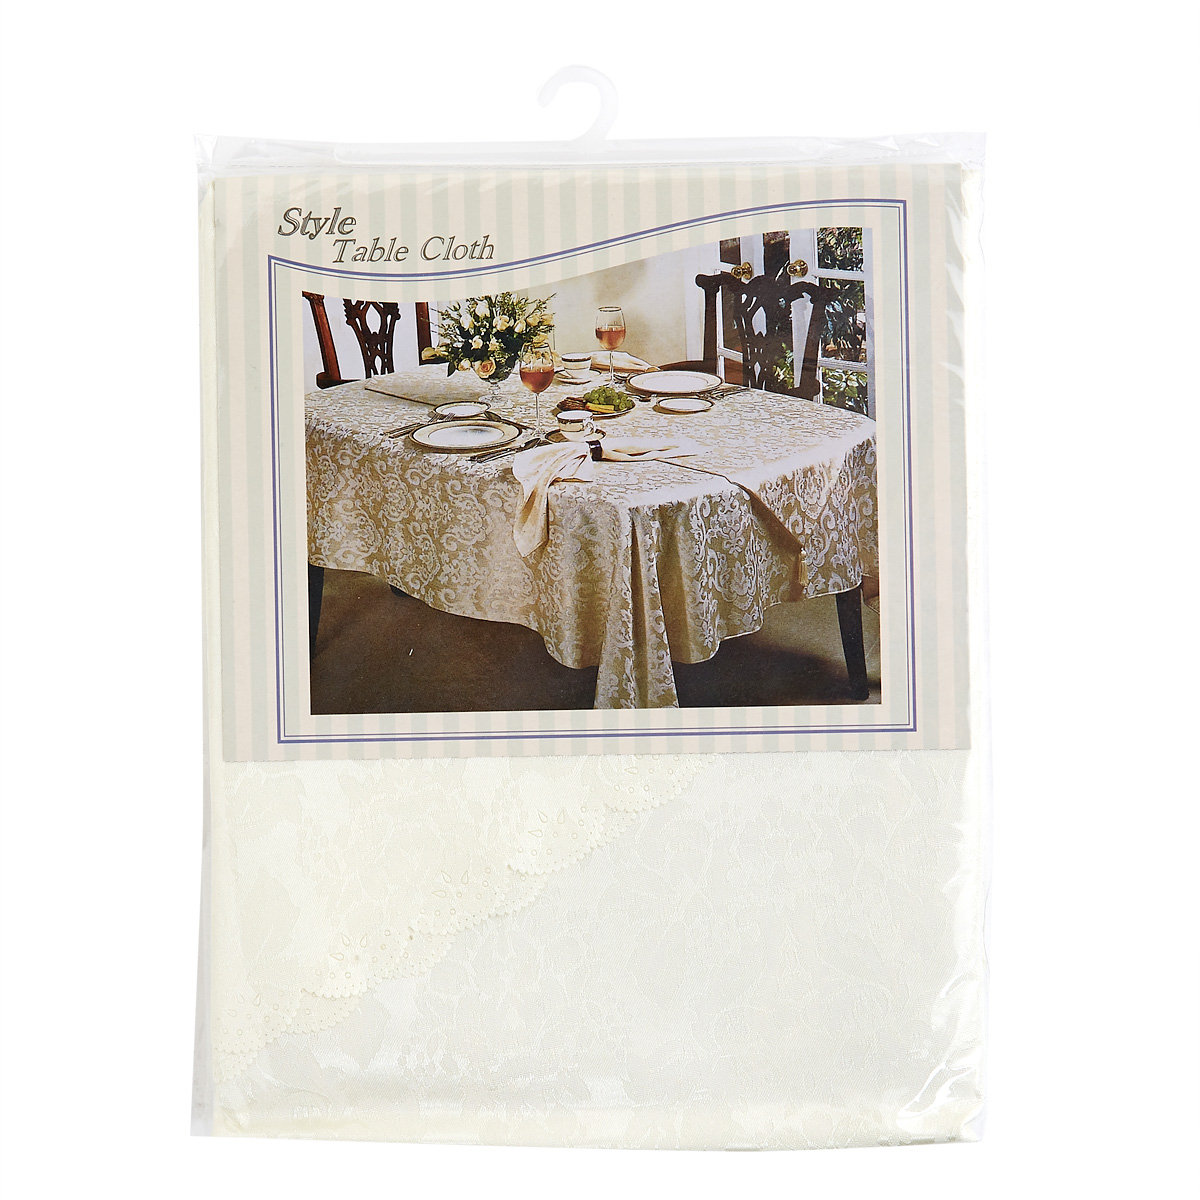 Fabric Square Table Cloth